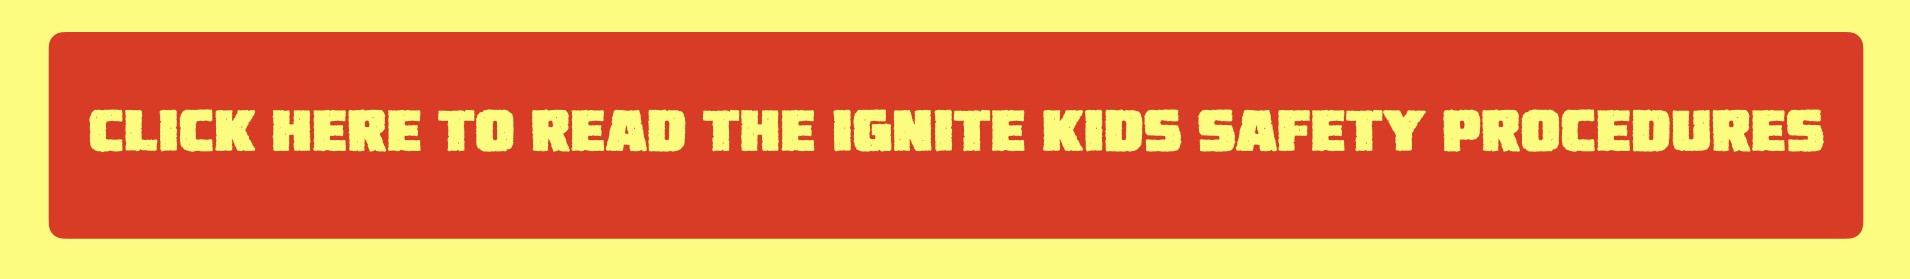 click here to read the ignite kids safety procedures